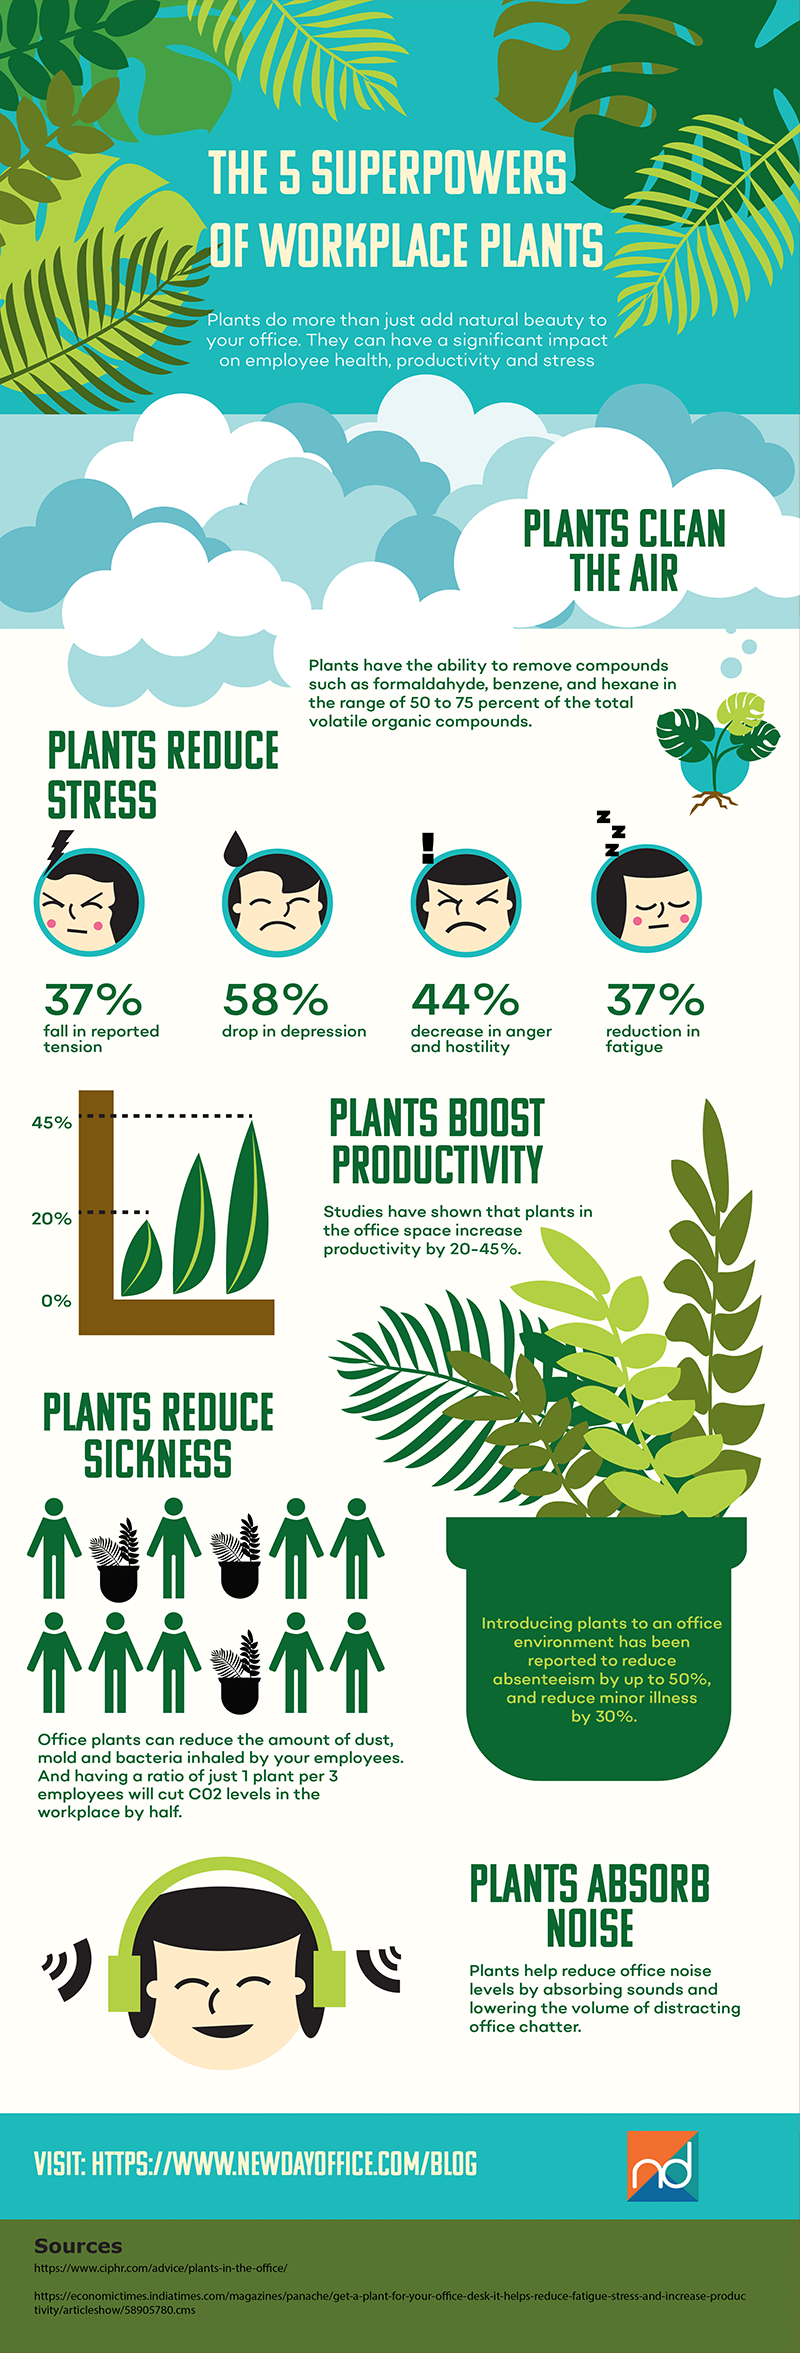 New Day Office - The 5 Superpowers of Workplace Plants